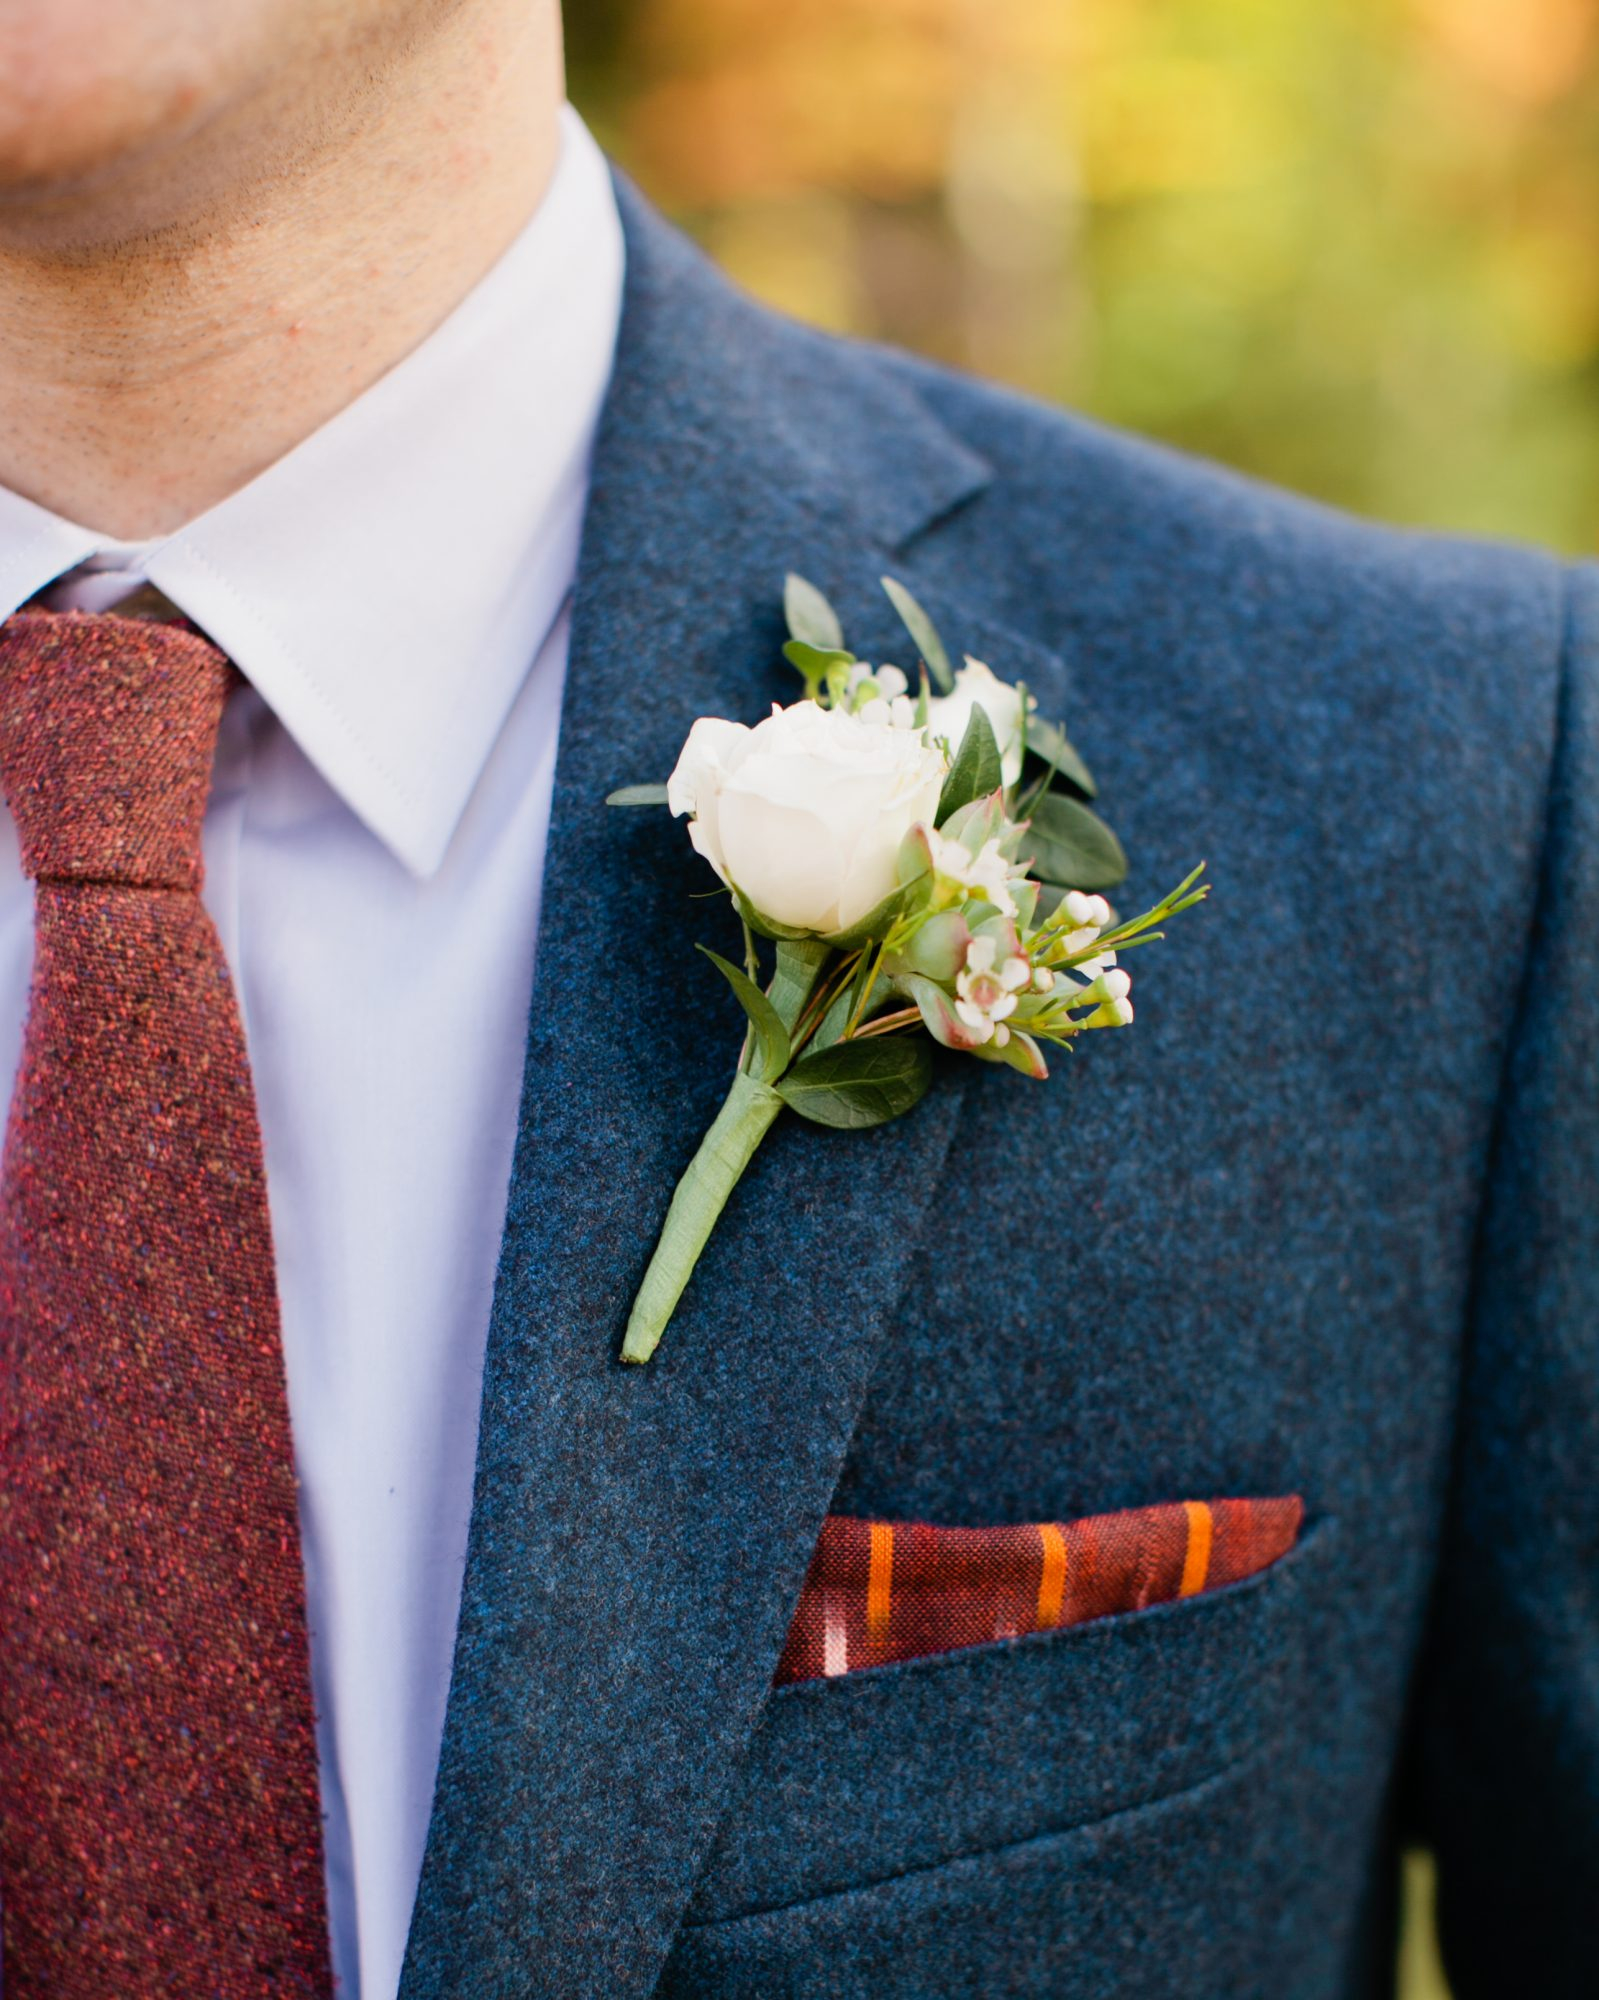 The Groom's Boutonniere